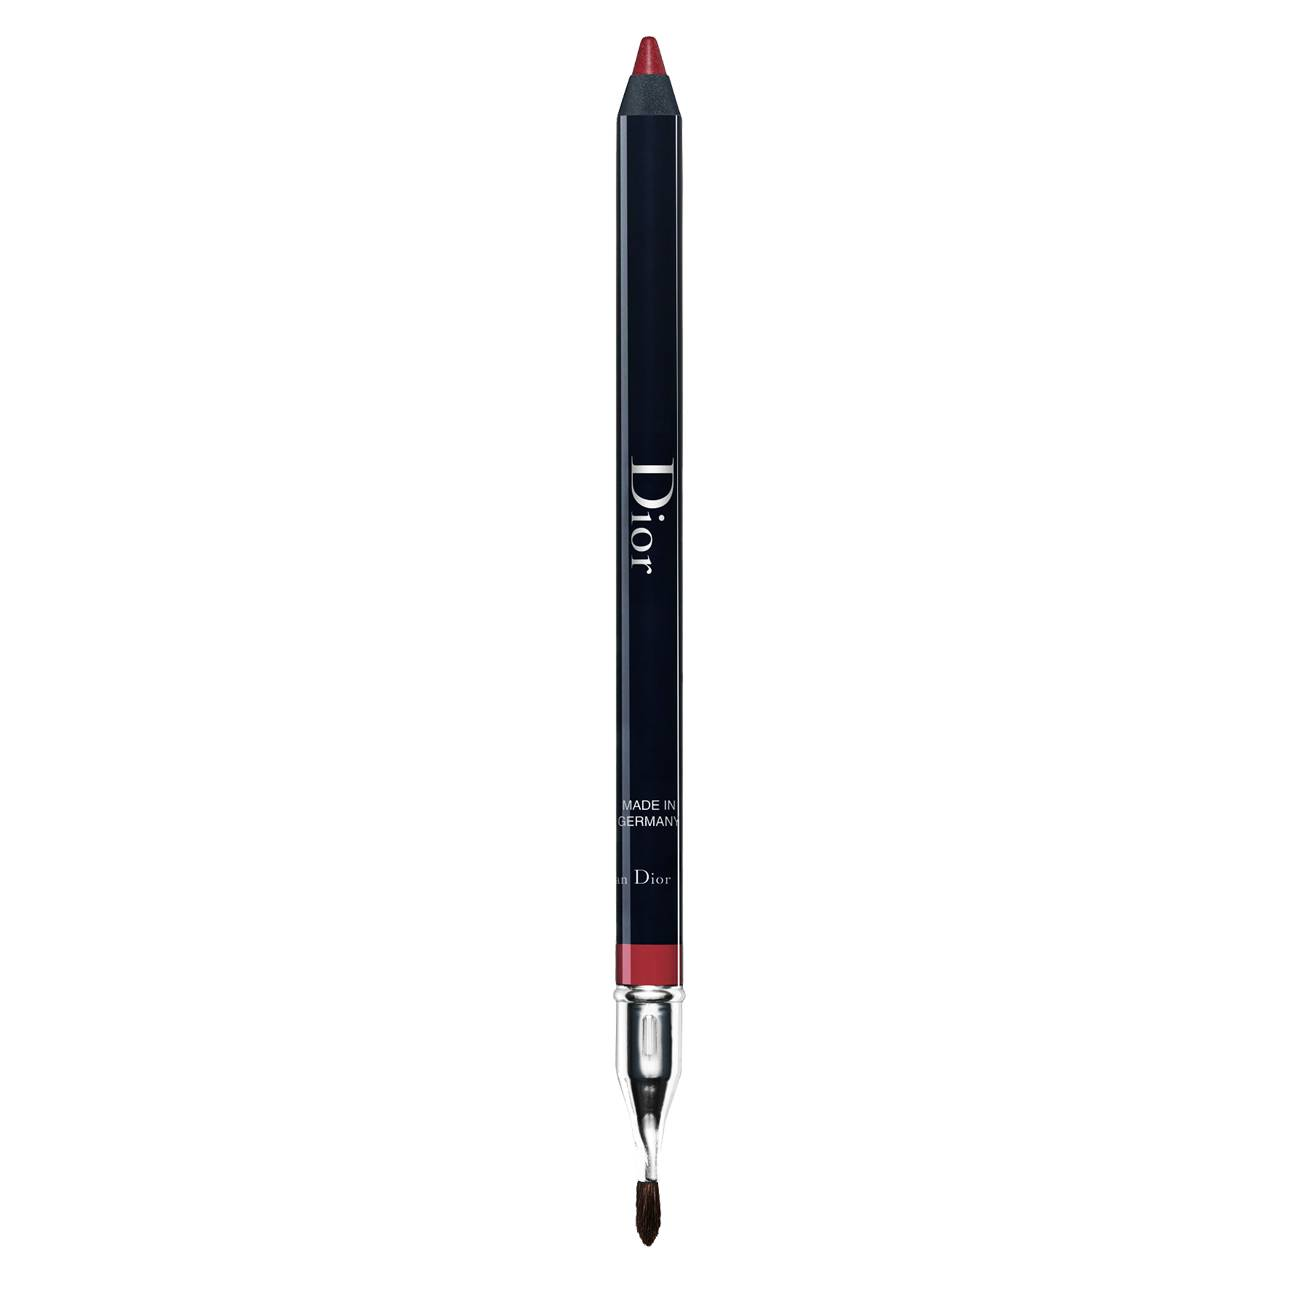 Dior Contour 775 1.2 Grame Dior imagine 2021 bestvalue.eu